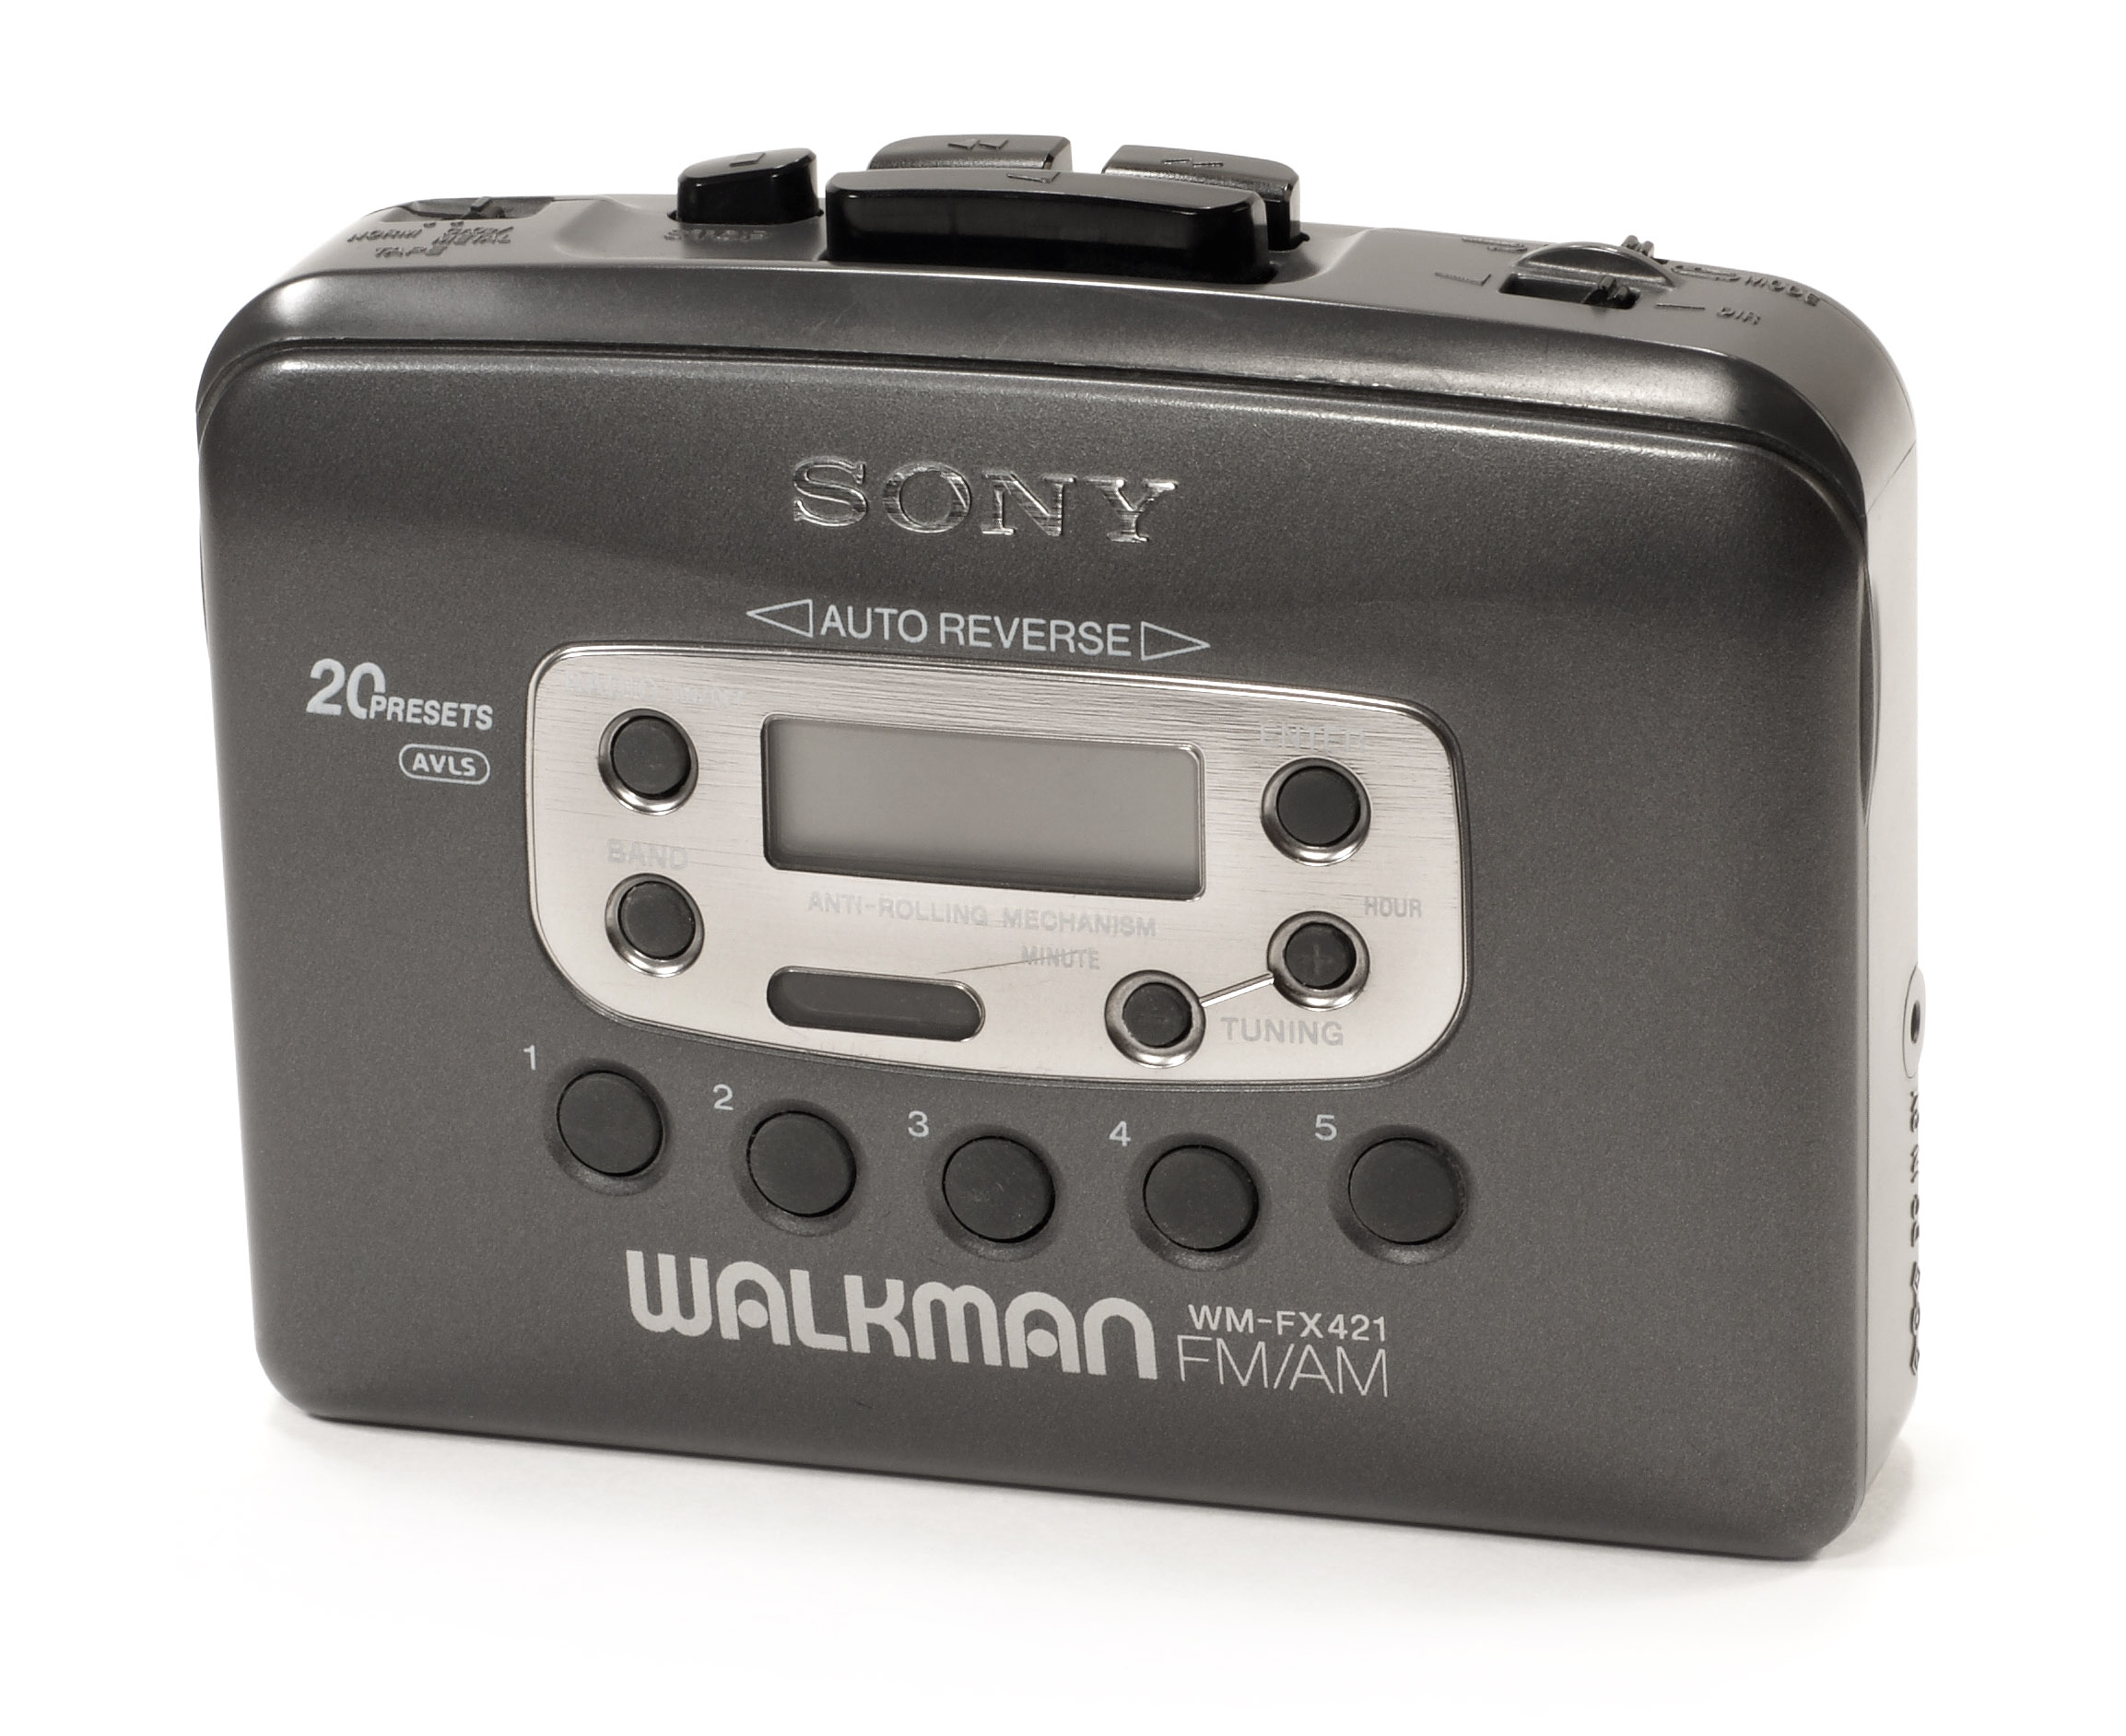 Transcription and Walkman